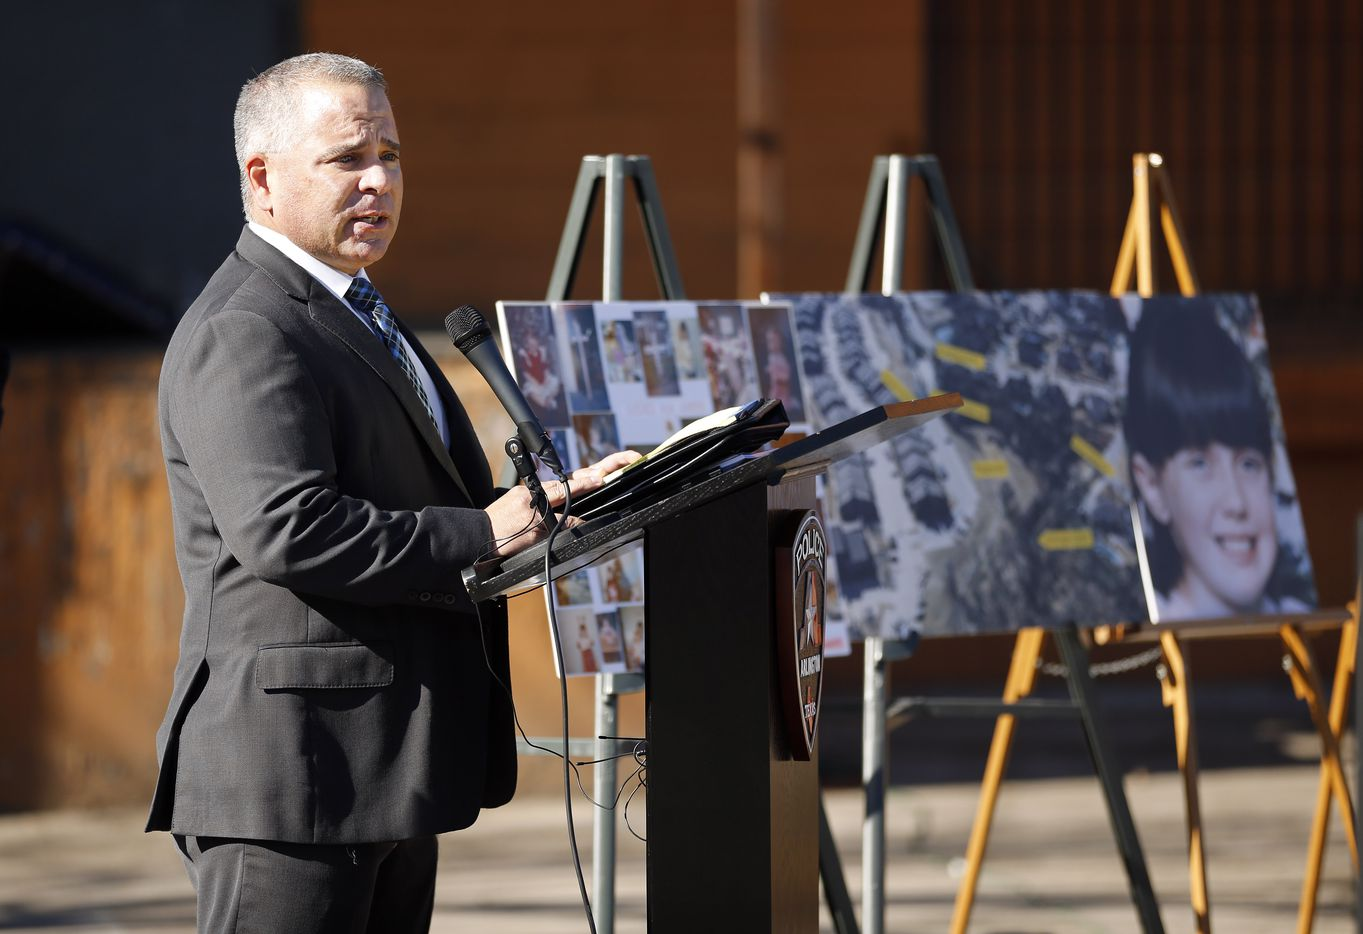 Arlington Police detective Sgt. Ben Lopez speaks about the events surrounding the abduction and subsequent murder of the little girl on January 13, 1996. The Arlington Police Department held a press event to provide new details at the abduction site in E. Arlington, Texas, Wednesday, January 13, 2021.